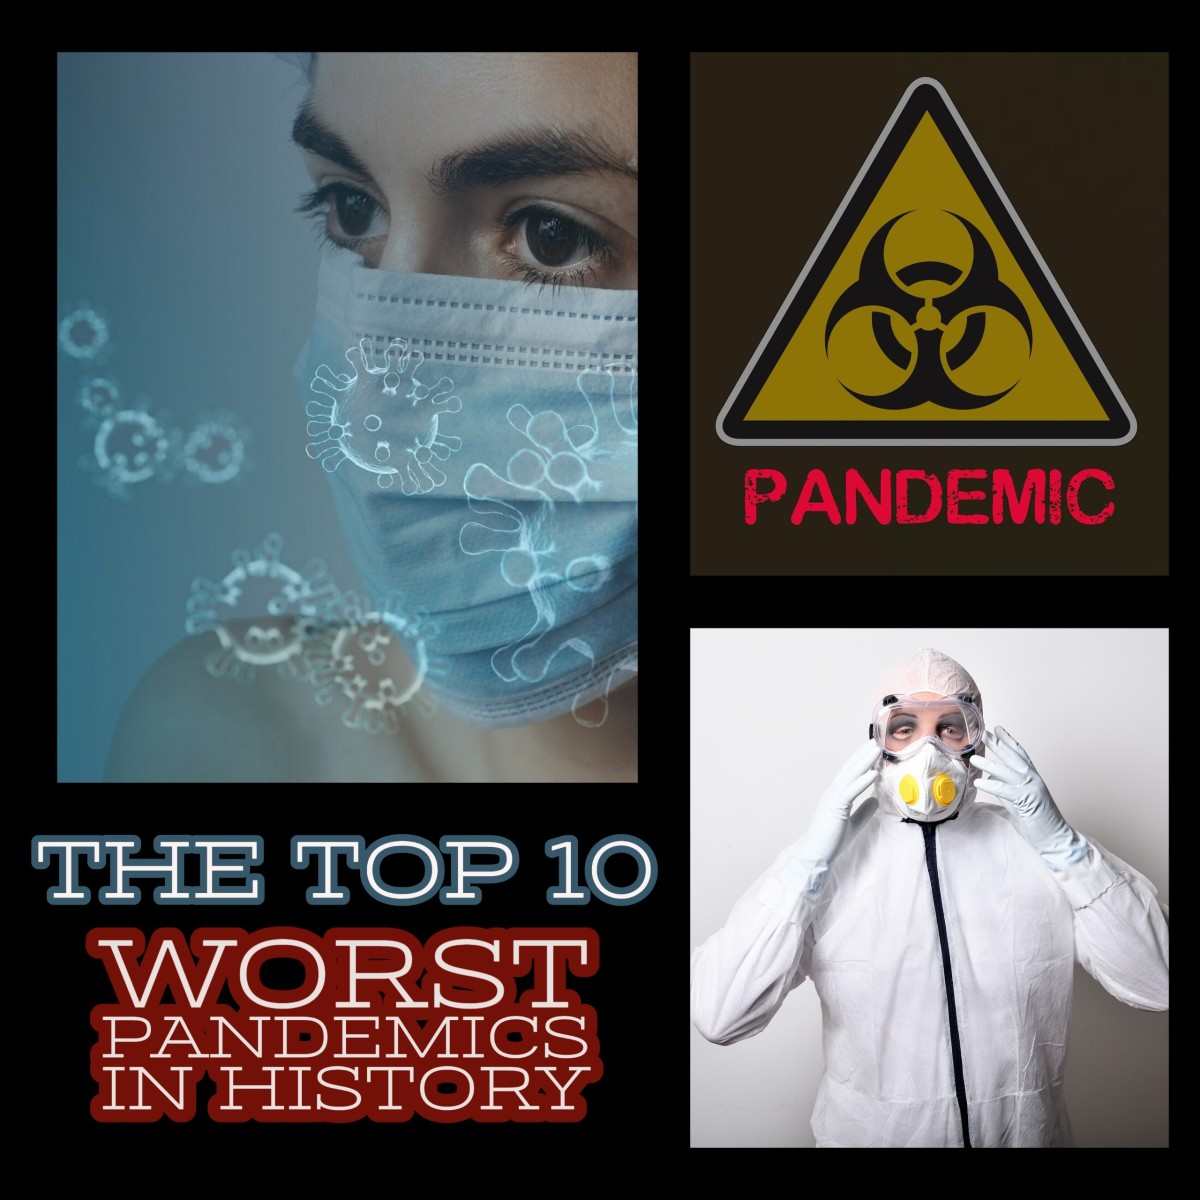 From Asia Flu to the Black Plague, this article ranks the 10 worst pandemics in human history.